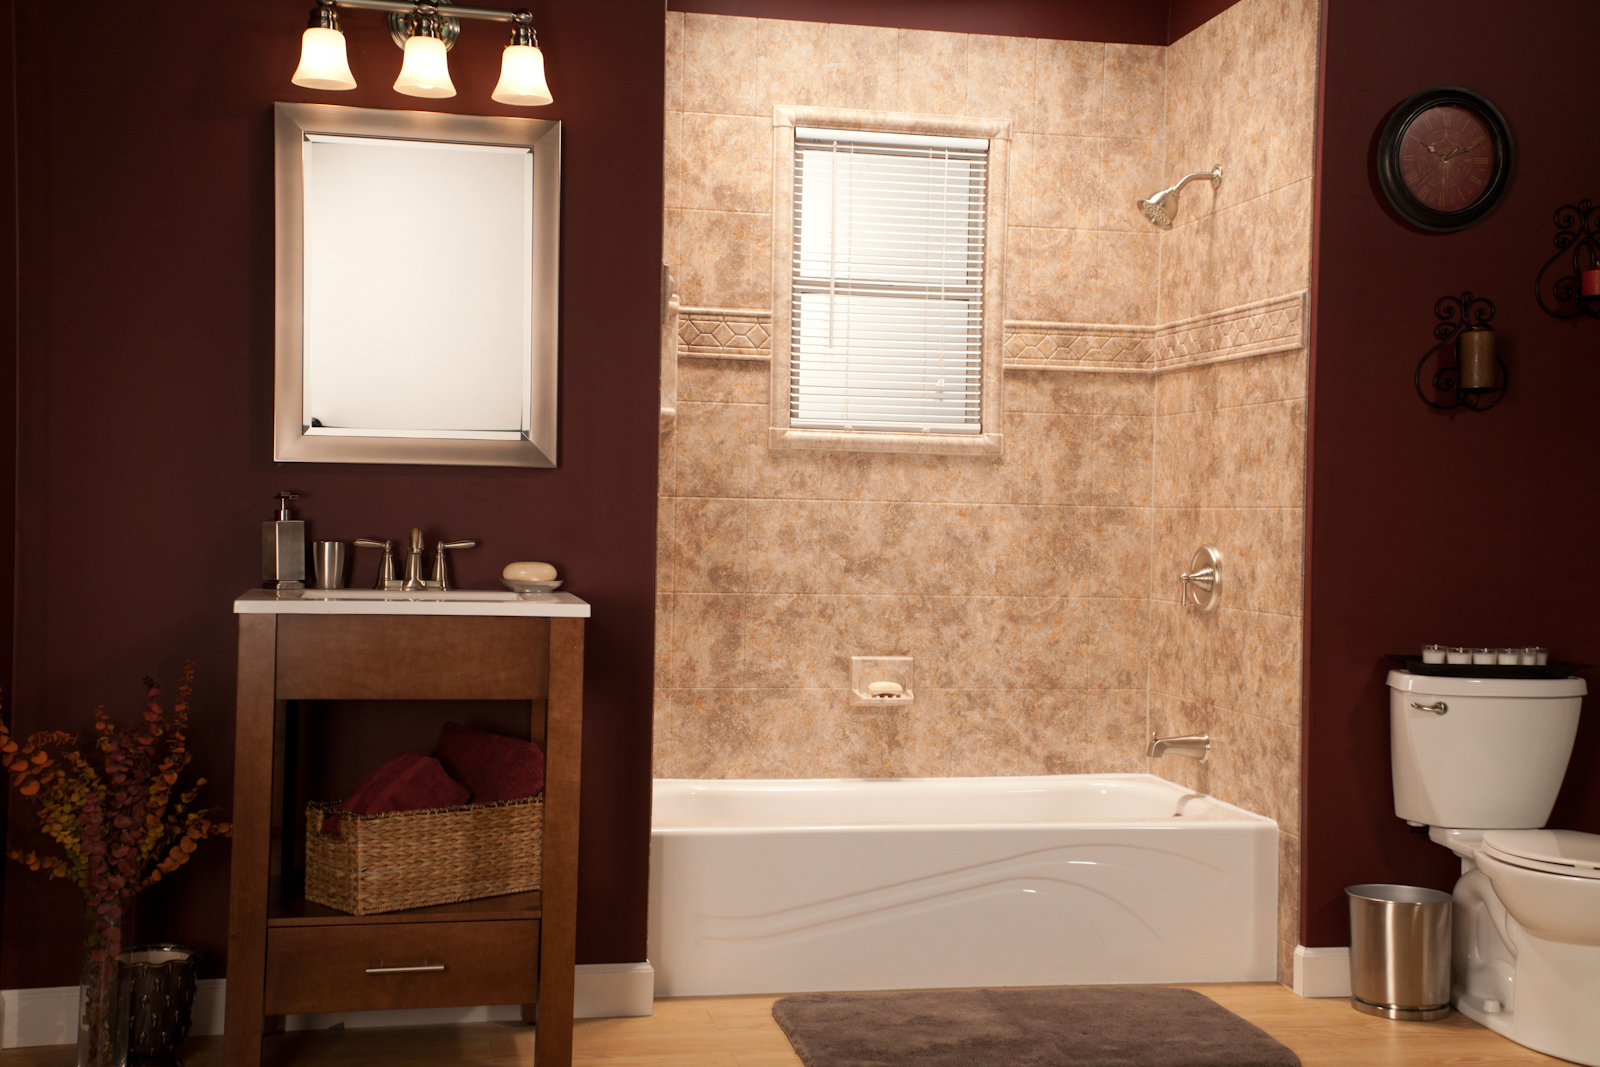 Bathroom remodeling in lubbock bath innovations by lhg for Bath remodel lubbock